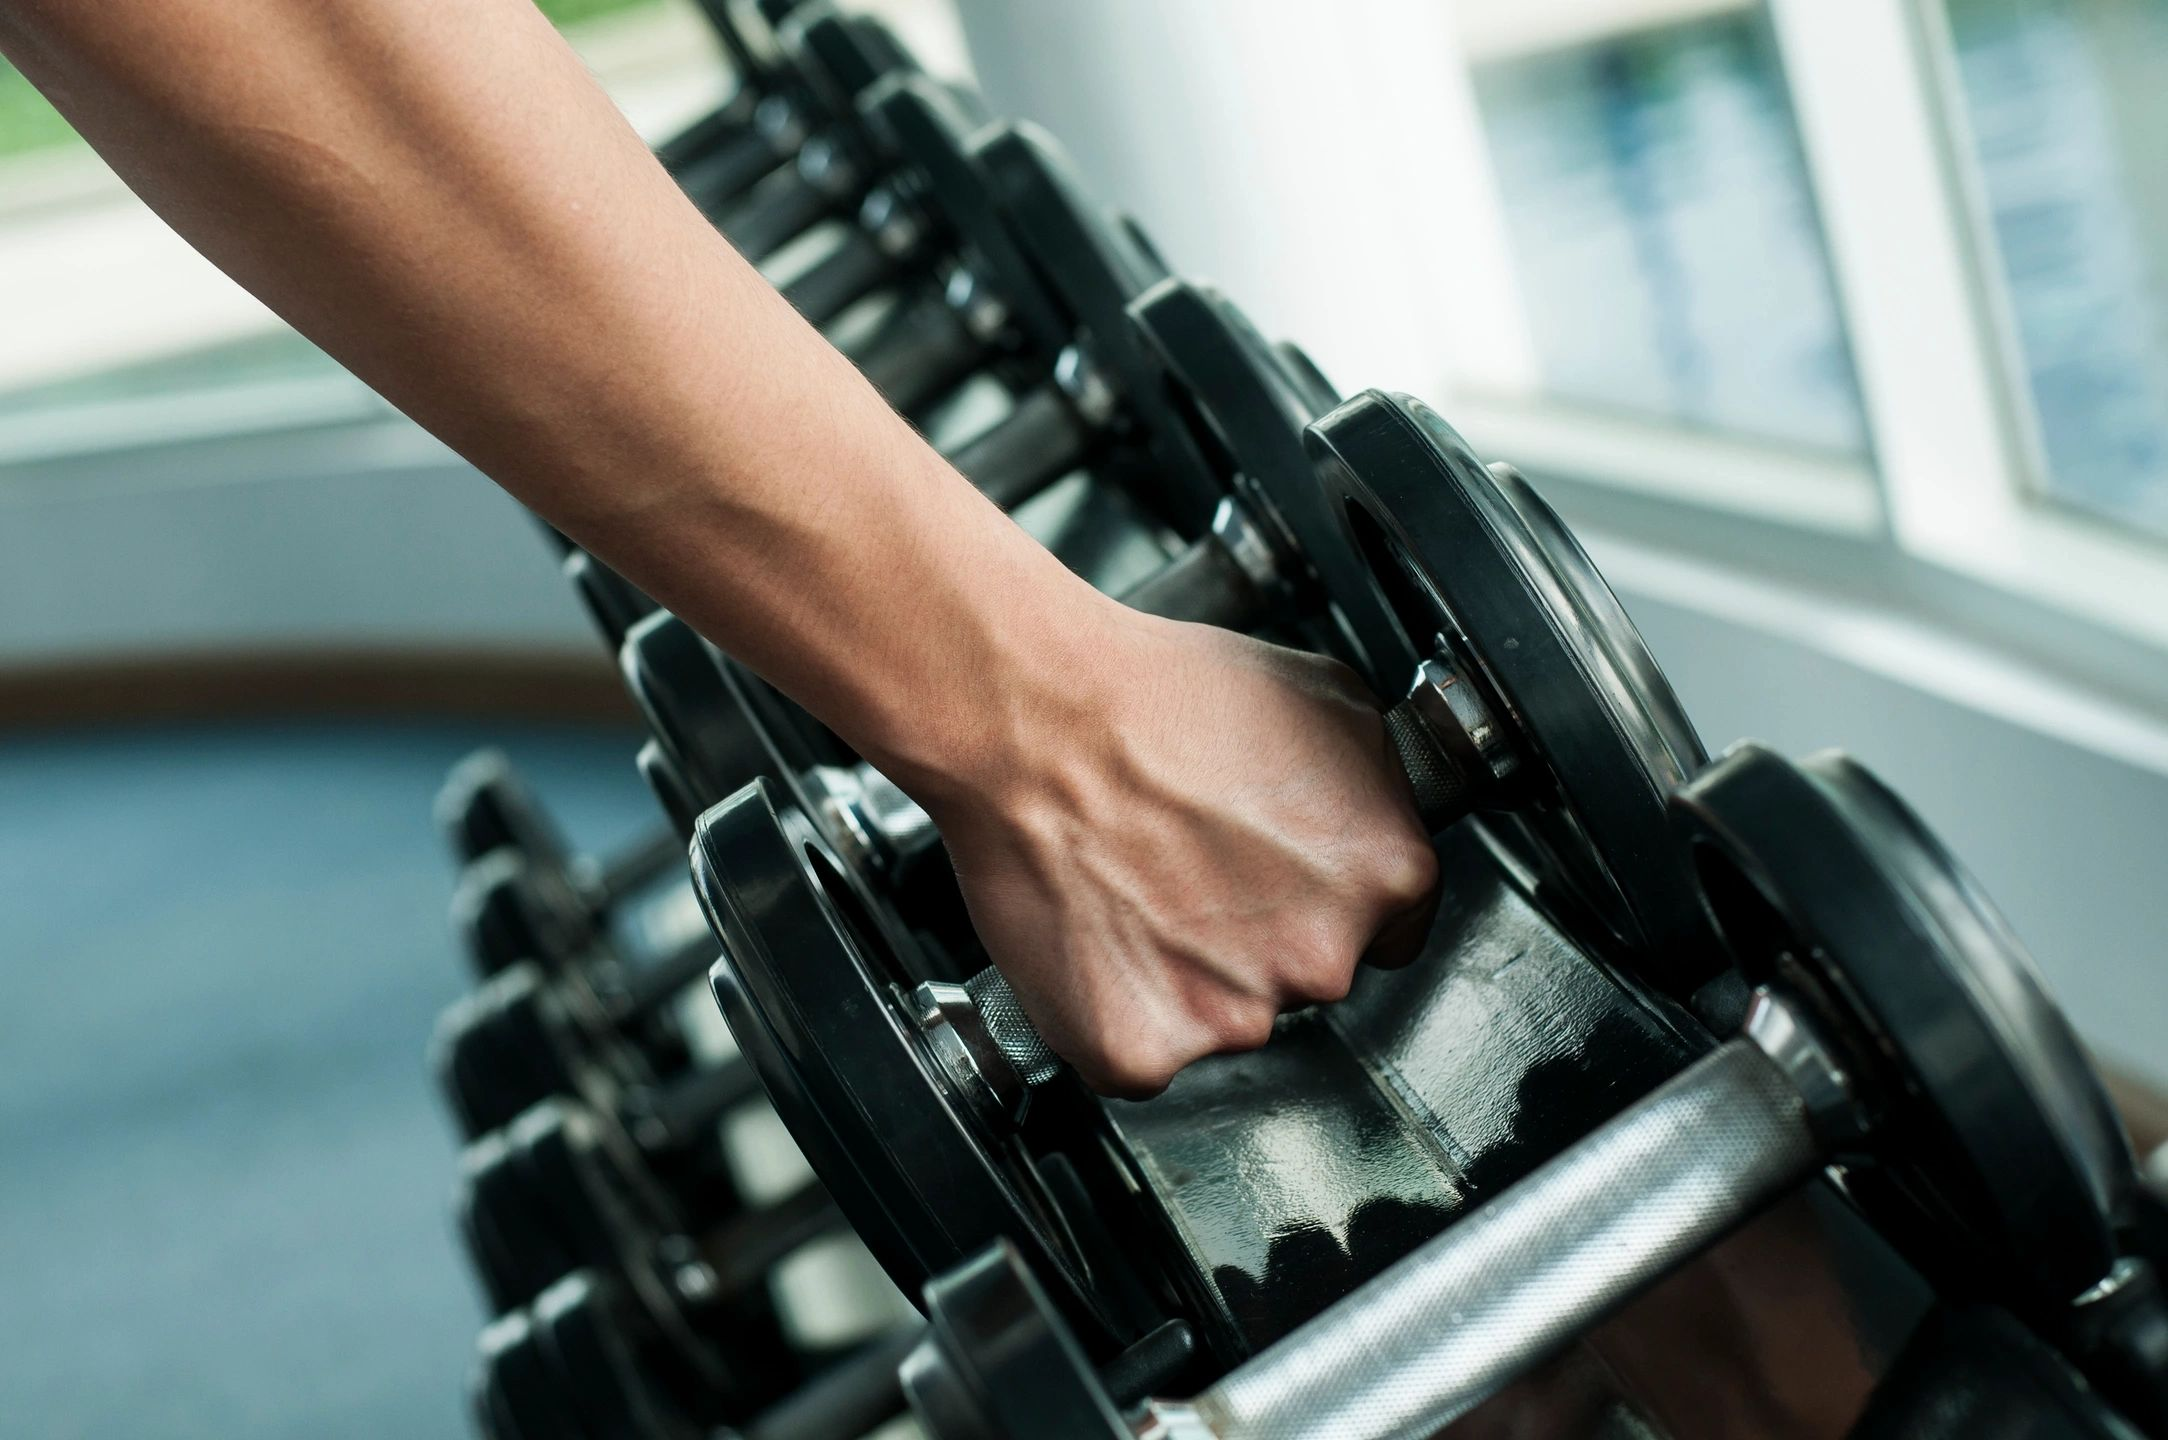 Building muscle with weights